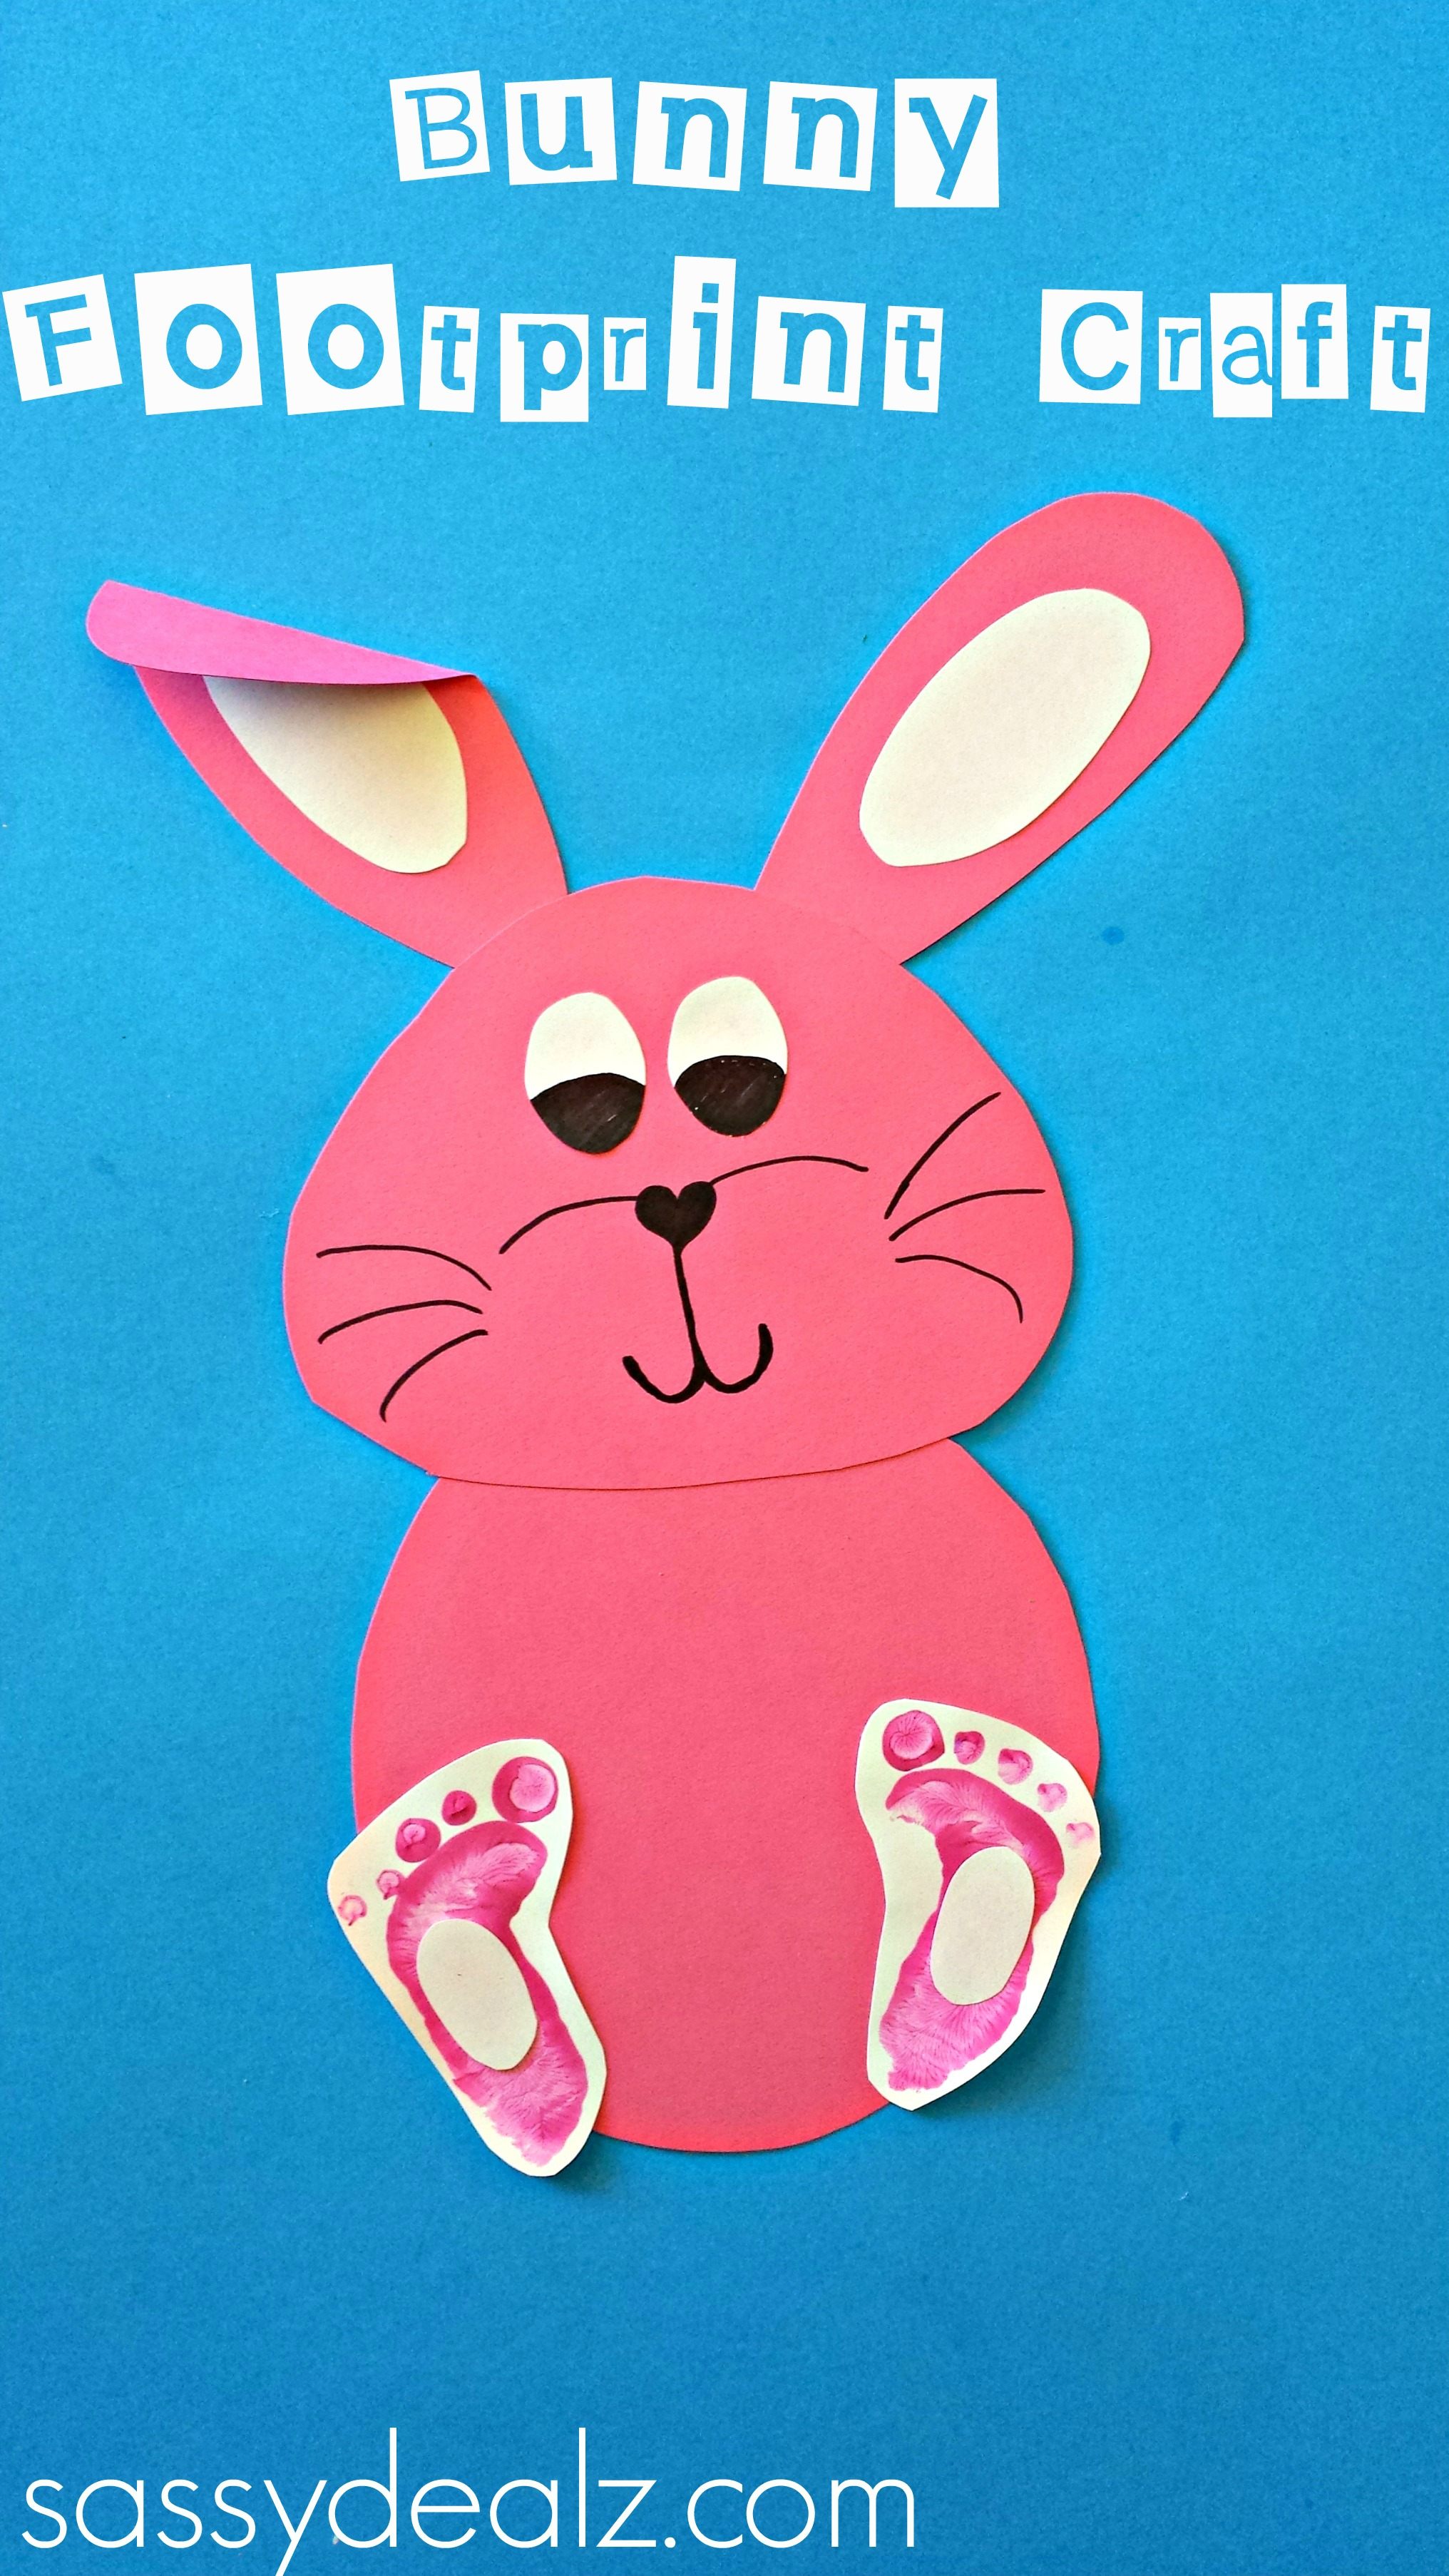 bunny footprint craft for kids crafty morning